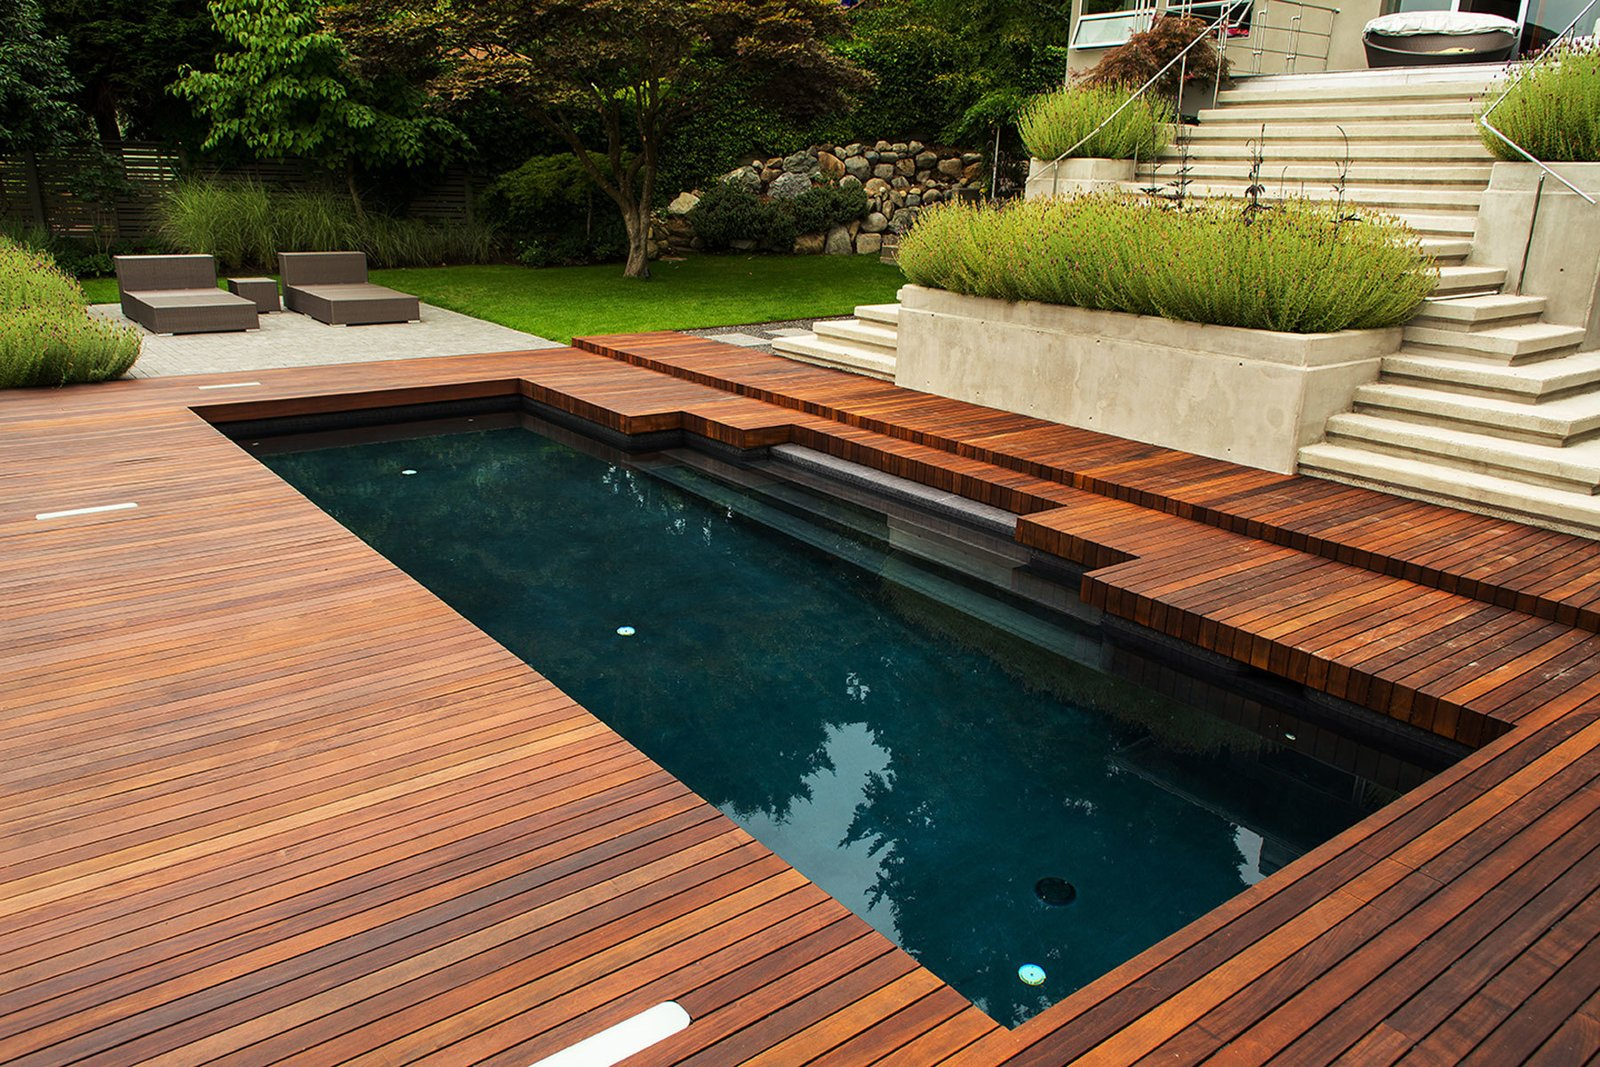 Black Pool  Photo 6 of 12 in Take a Plunge Into These Enticing Modern Pools